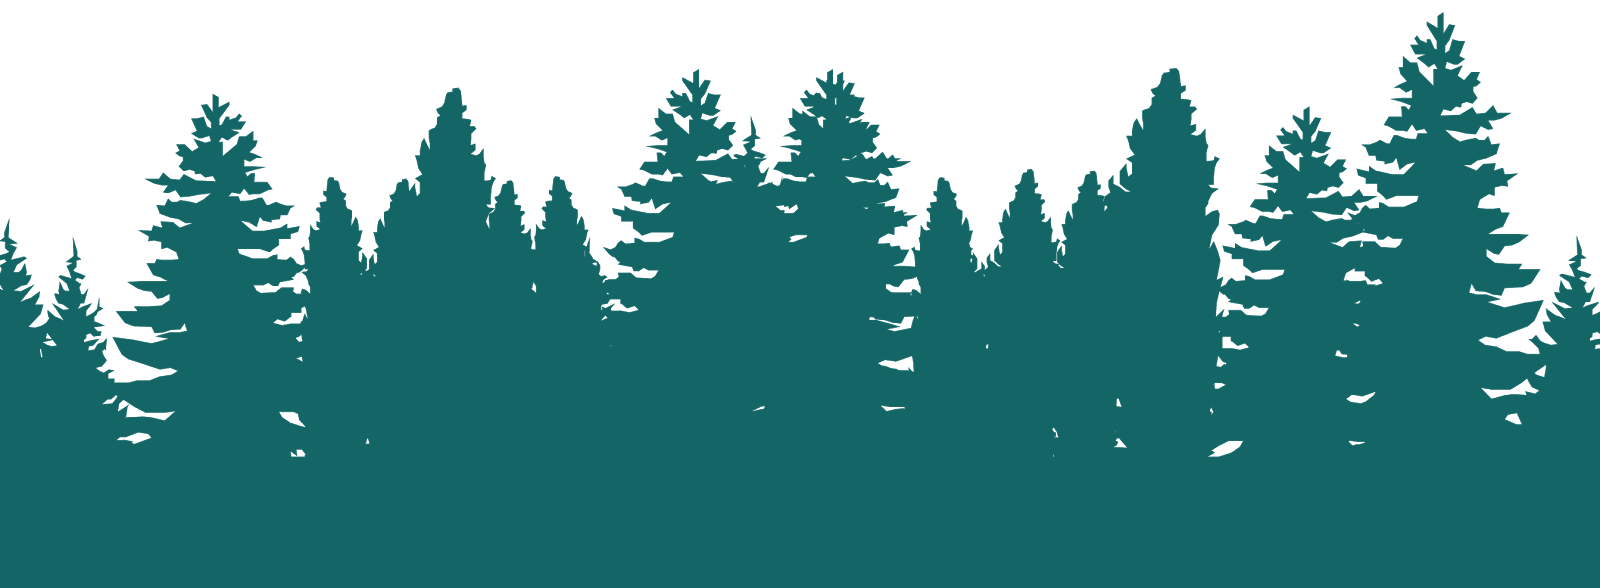 Forest silhouette png. Free download clip art